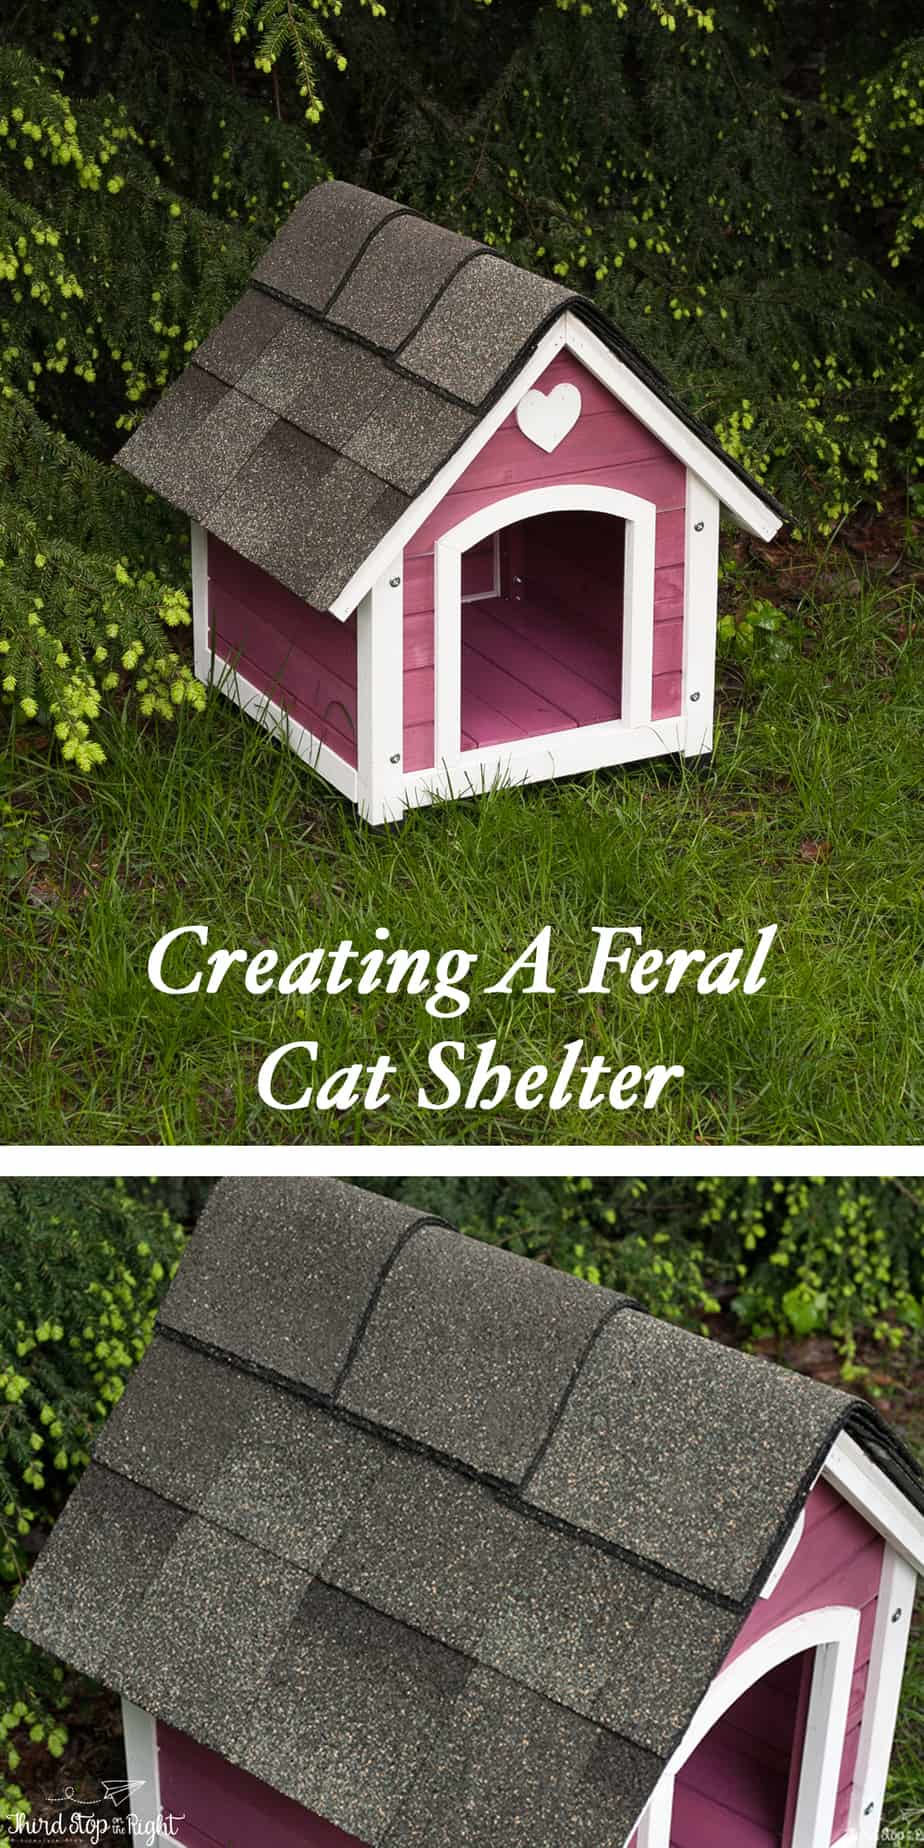 Creating a Feral Cat Shelter. Complete directions on how to build and shingle a dog house or a shelter for feral cats.